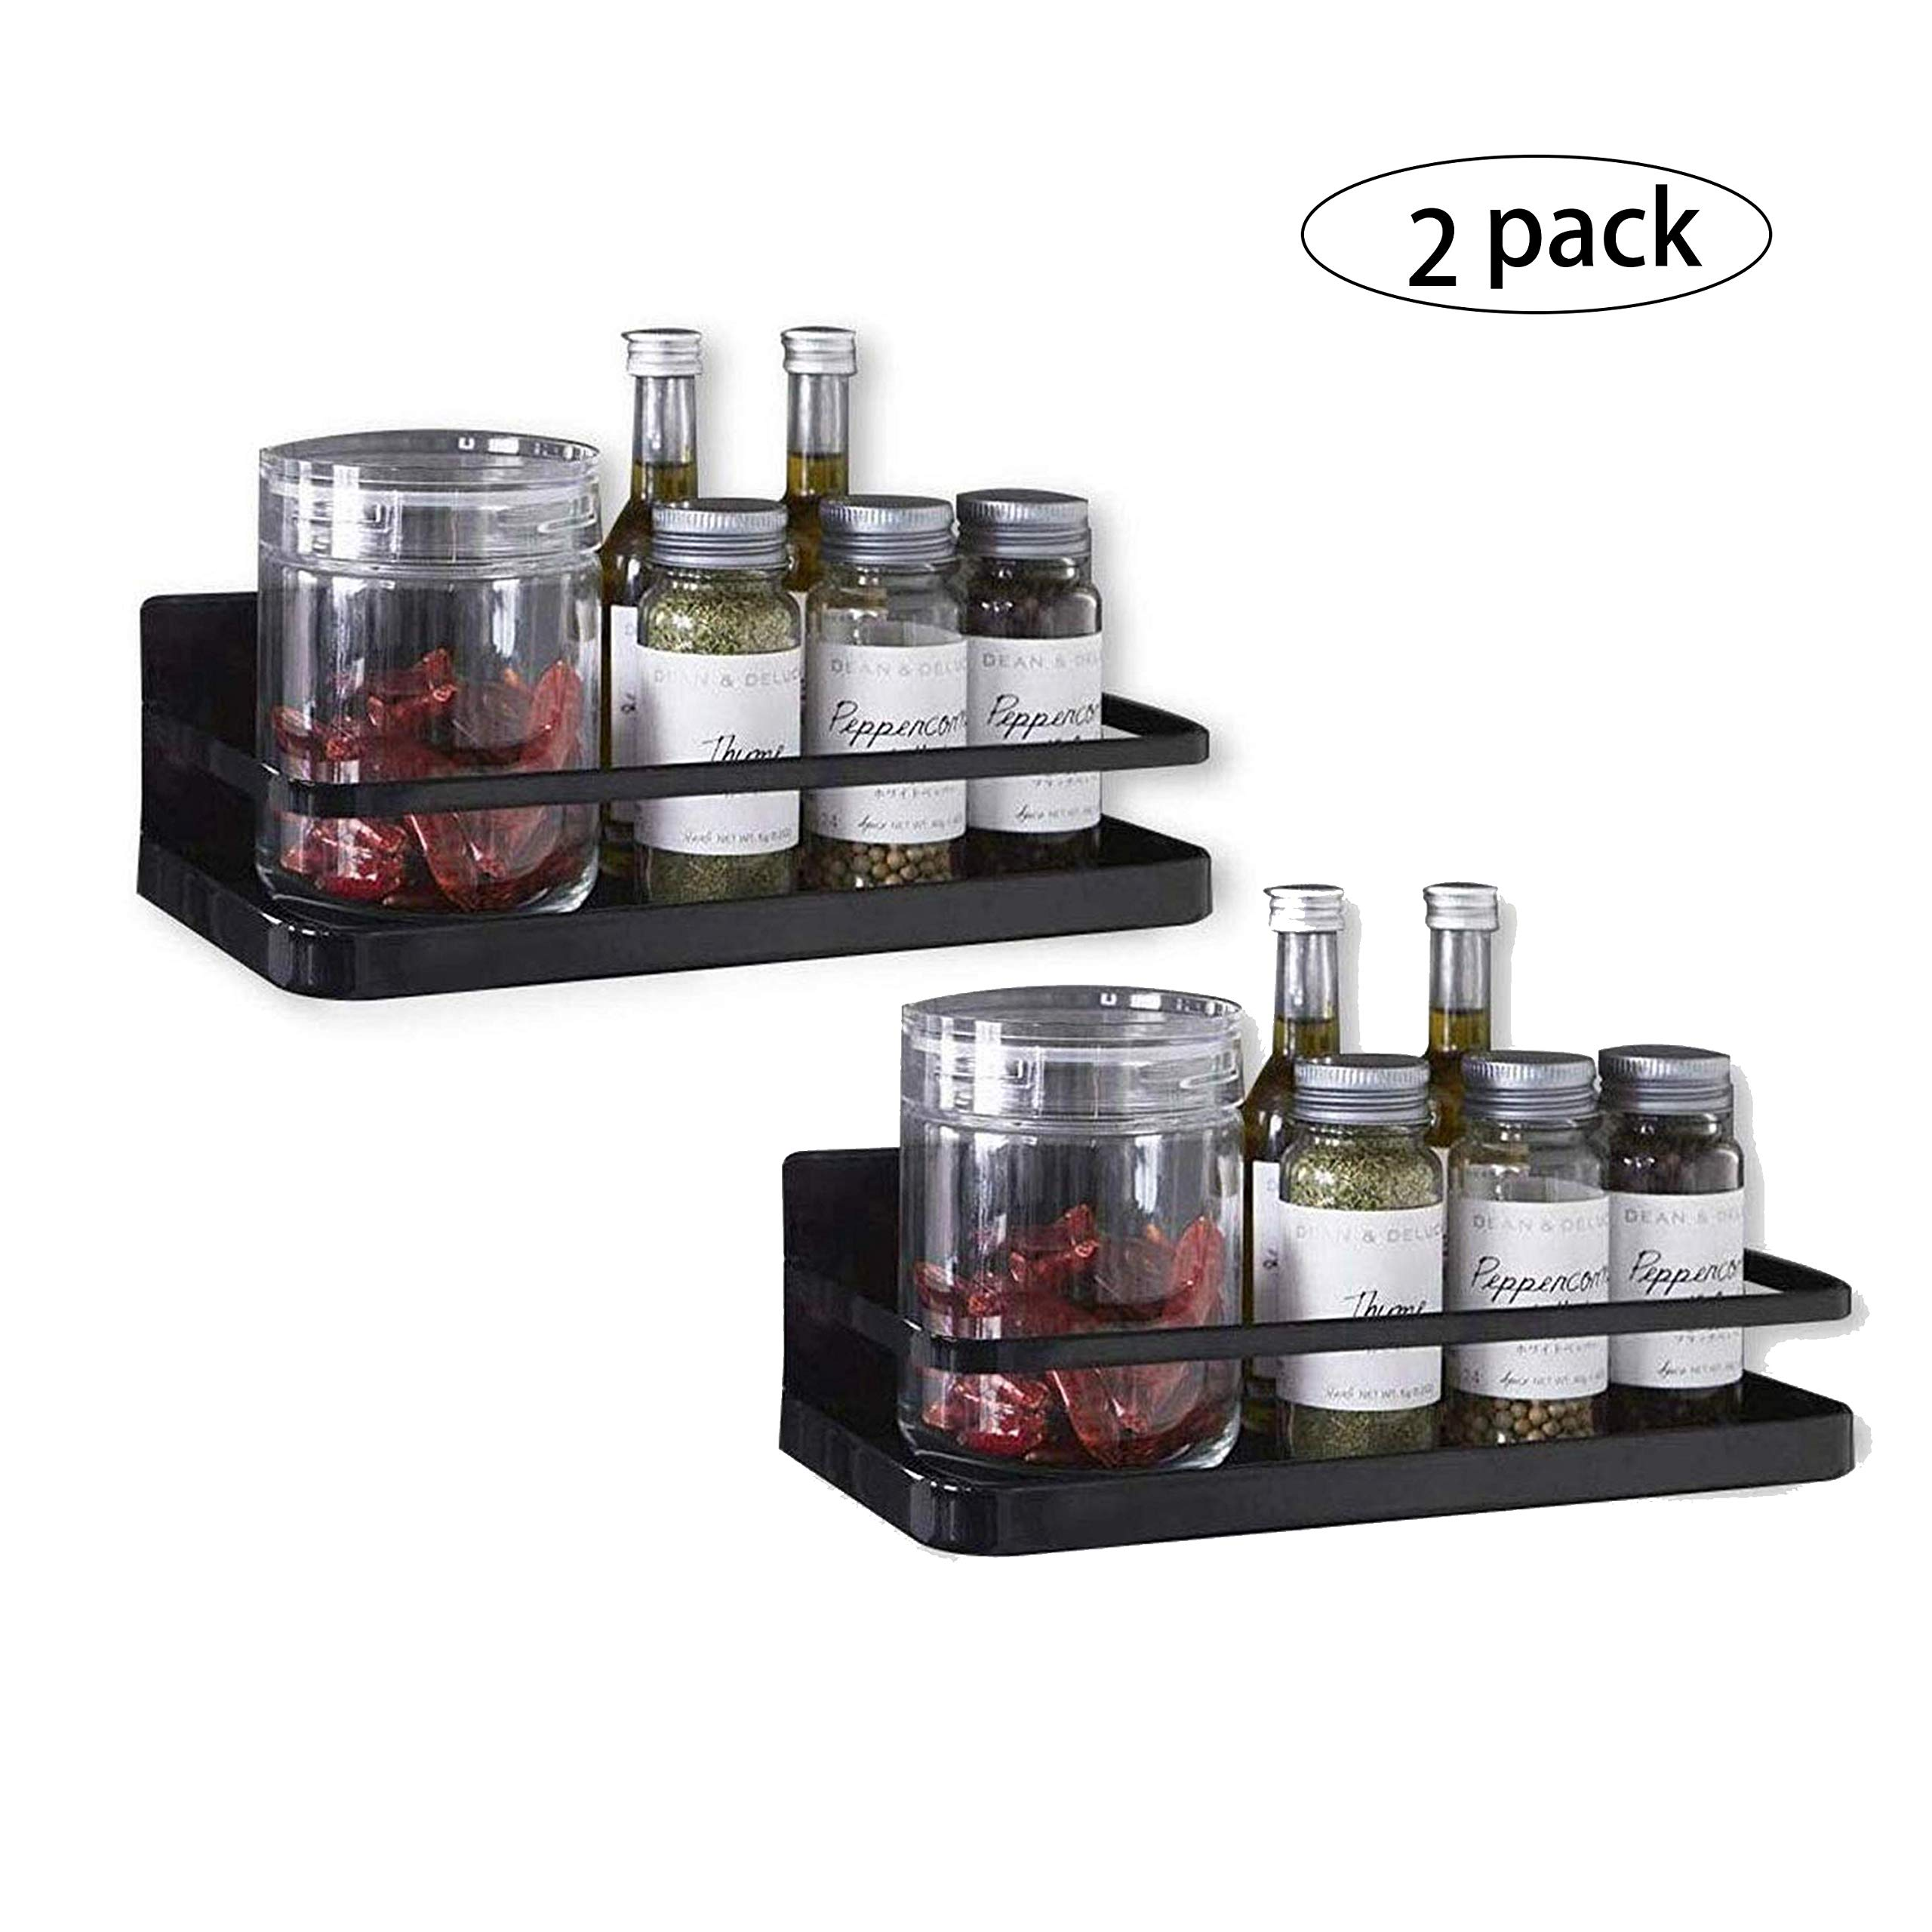 Magnetic Spice Rack Organizer Single Tier Refrigerator Spice Storage Shelf, Easy to Install The Side of The Refrigerator Can Hold spices, Jar of Olive Oil (Black, 2 PACK) by Hoopoton